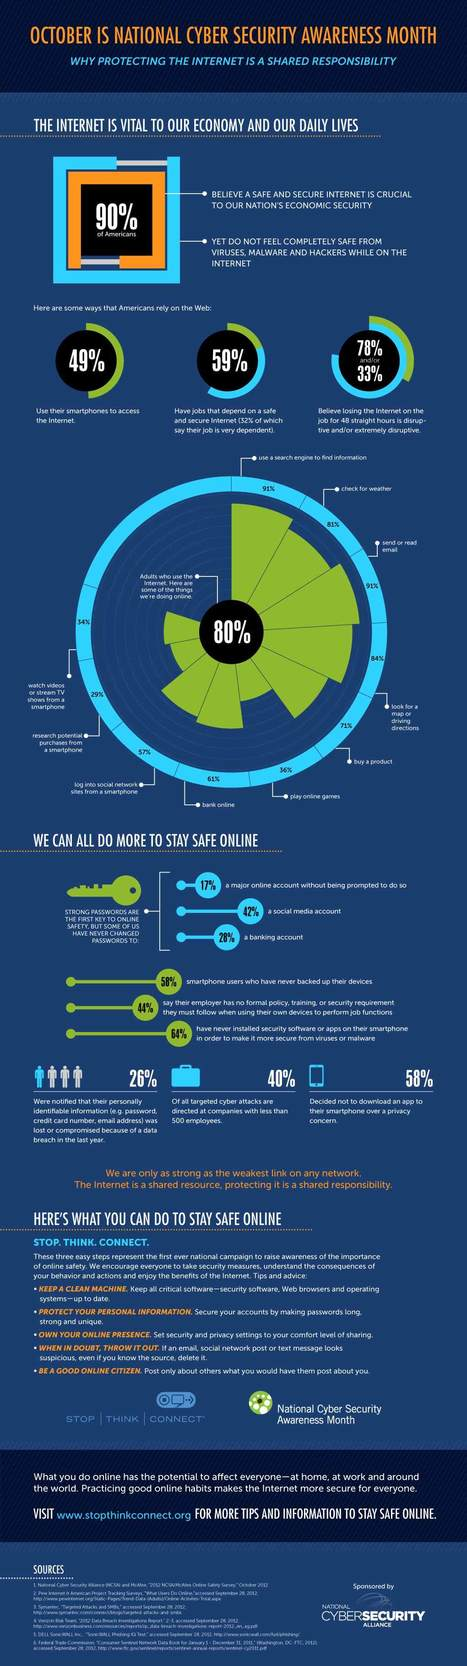 Protecting the Internet Infographic | StaySafeOnline.org | A New Society, a new education! | Scoop.it